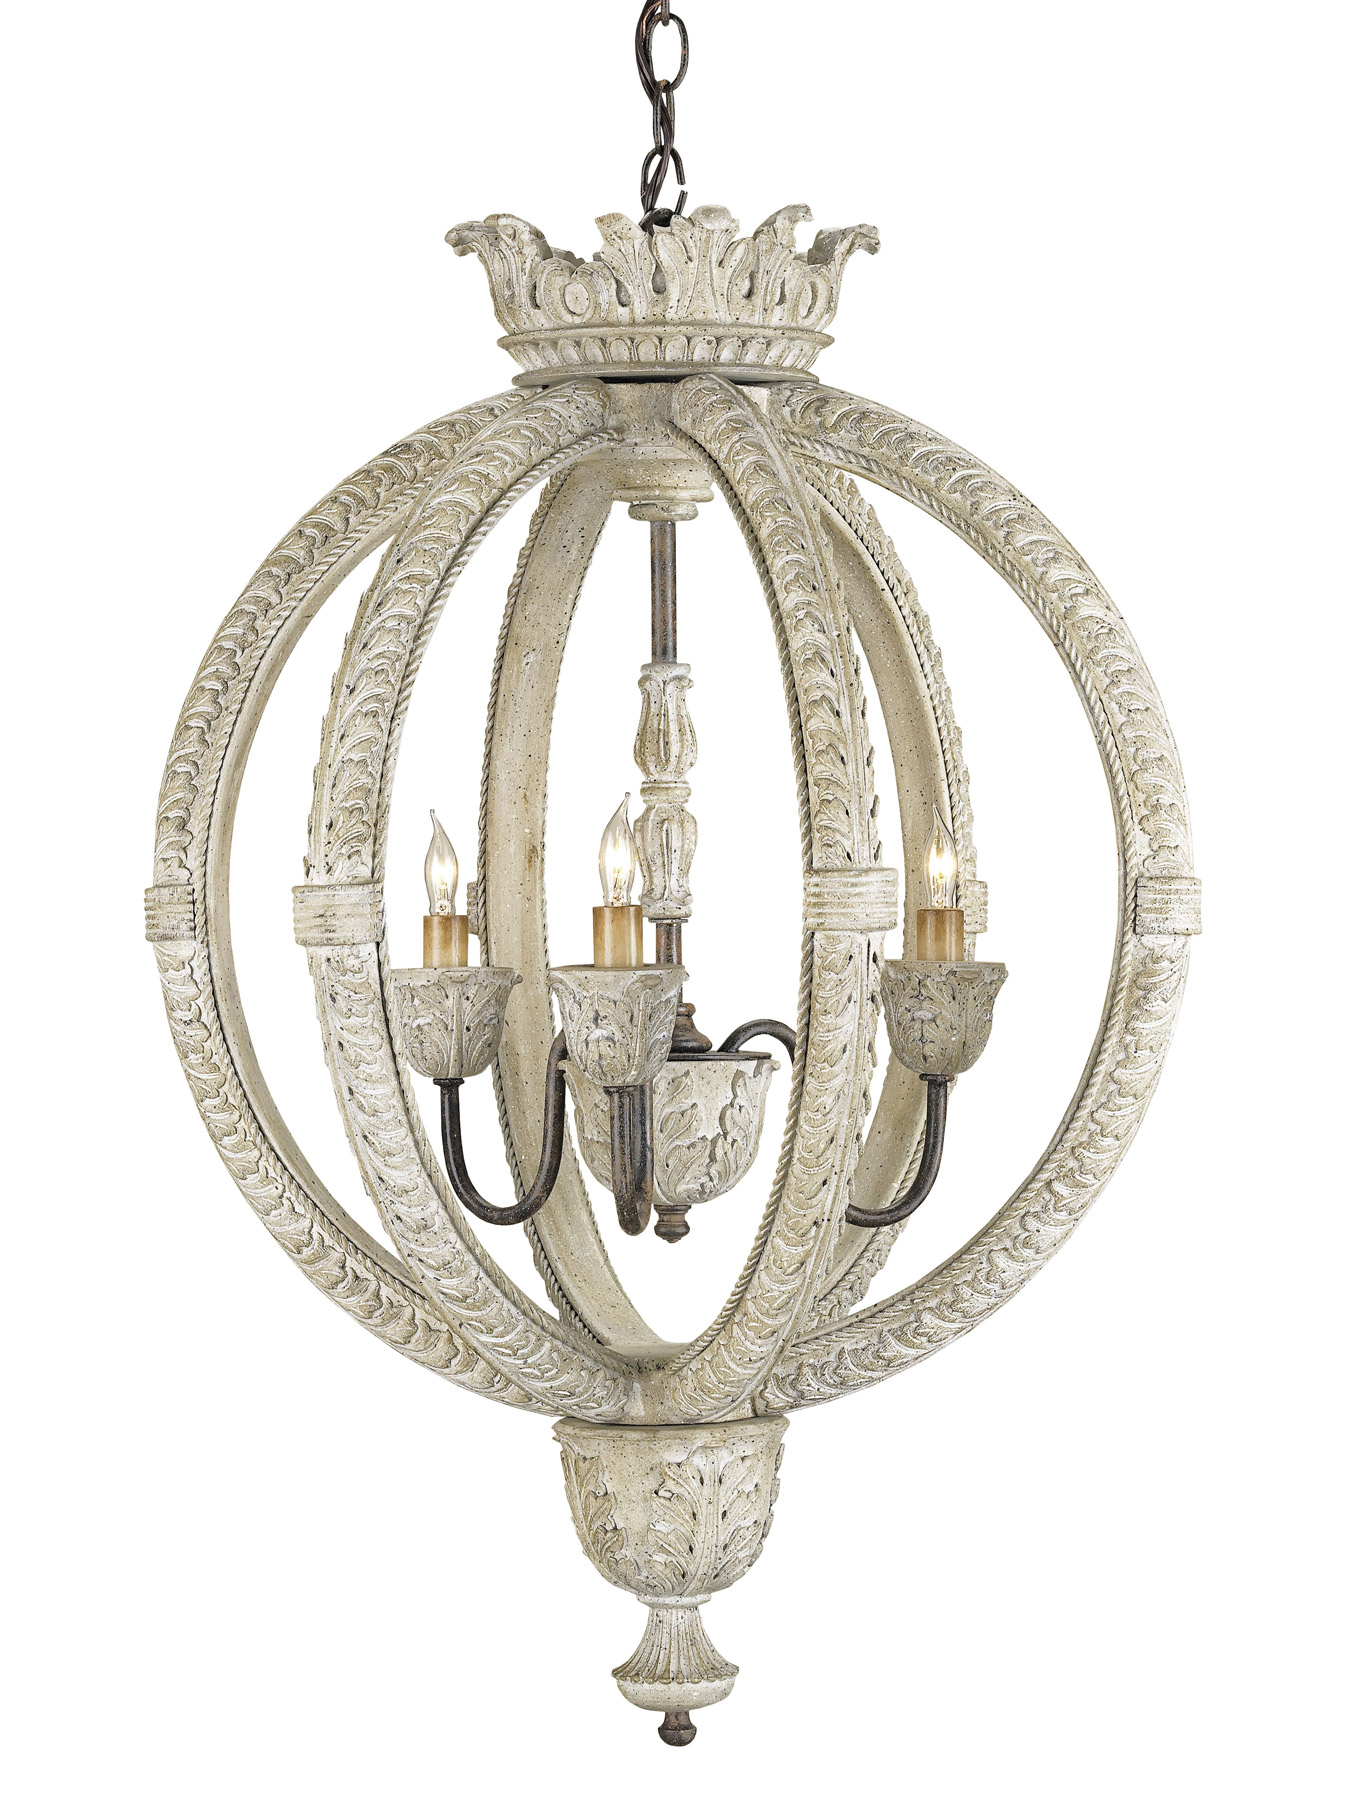 Orb chandeliers interesting with orb chandeliers awesome full size gallery of currey and company dauphin small orb chandelier with orb chandeliers aloadofball Image collections